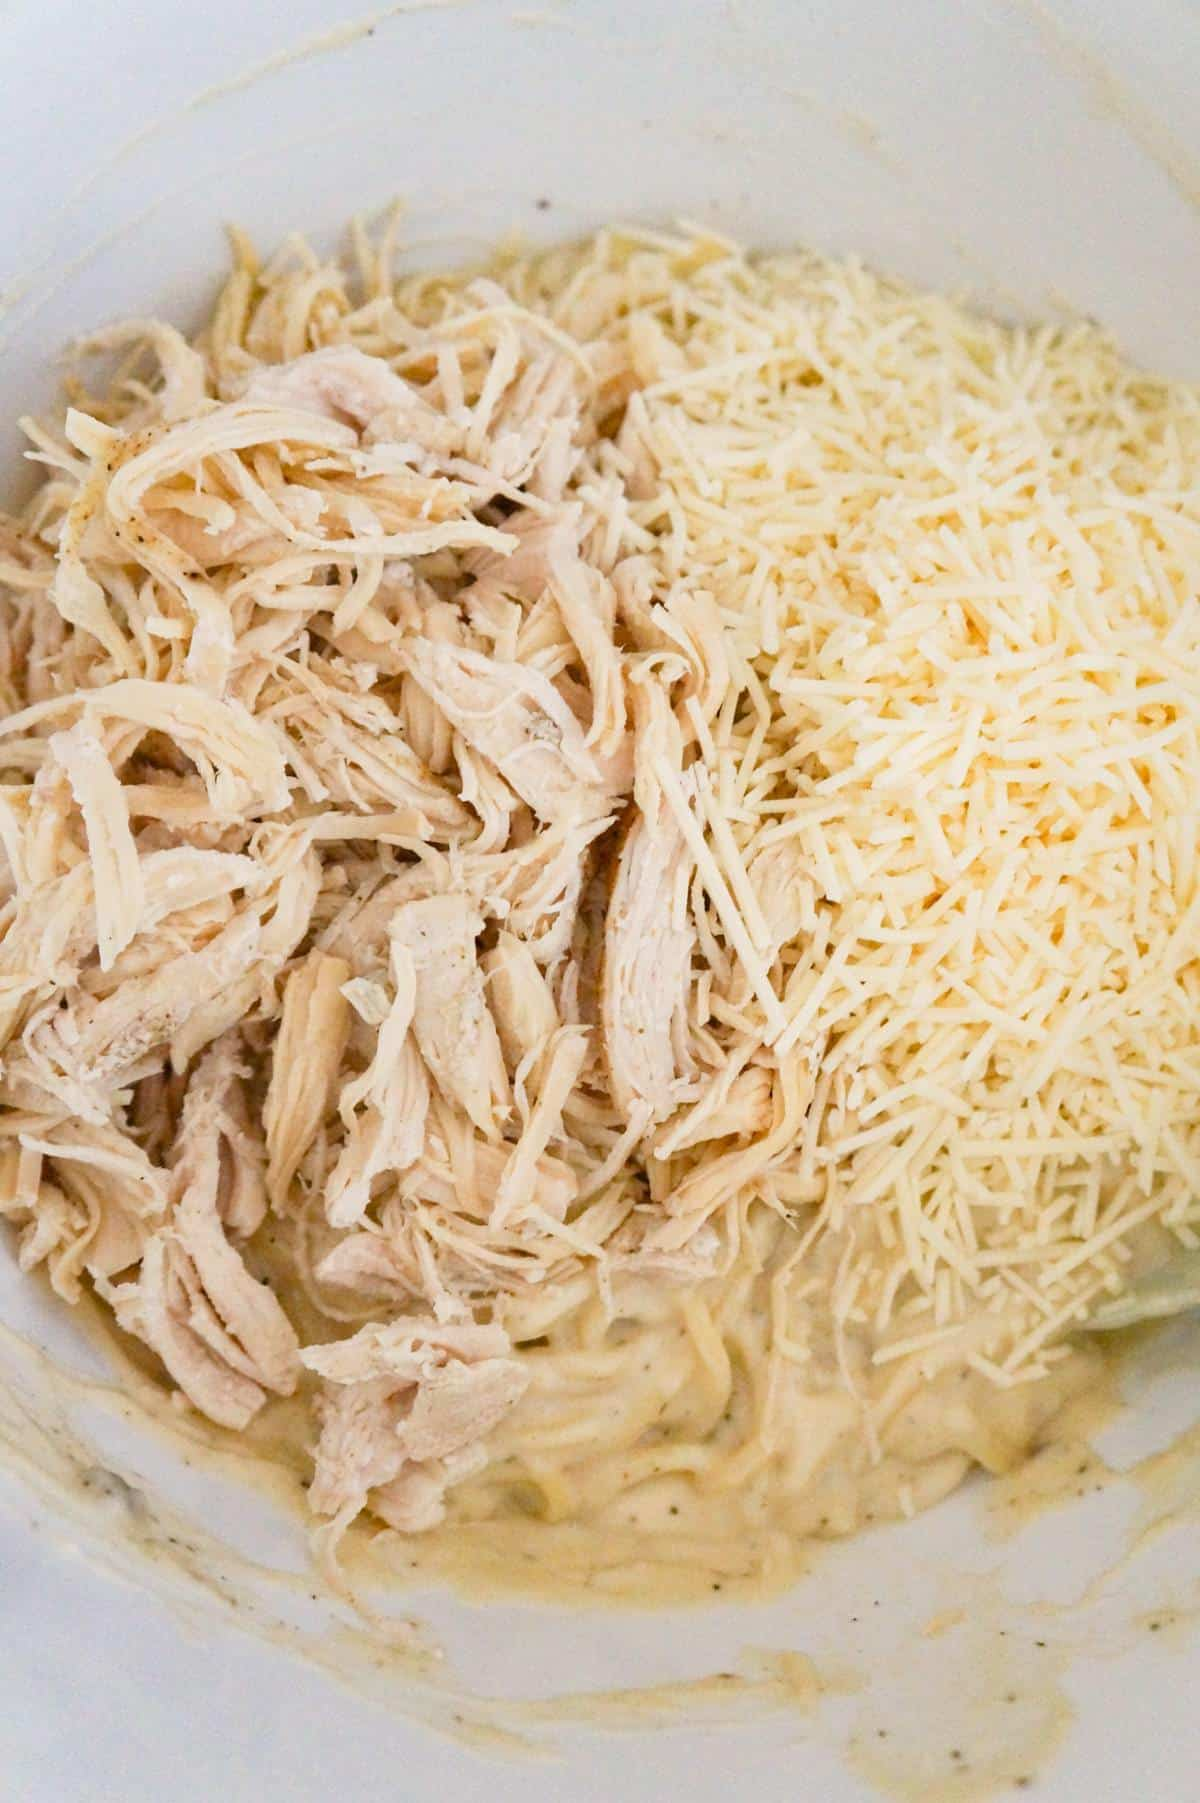 shredded chicken and shredded Parmesan on top of spaghetti in a mixing bowl